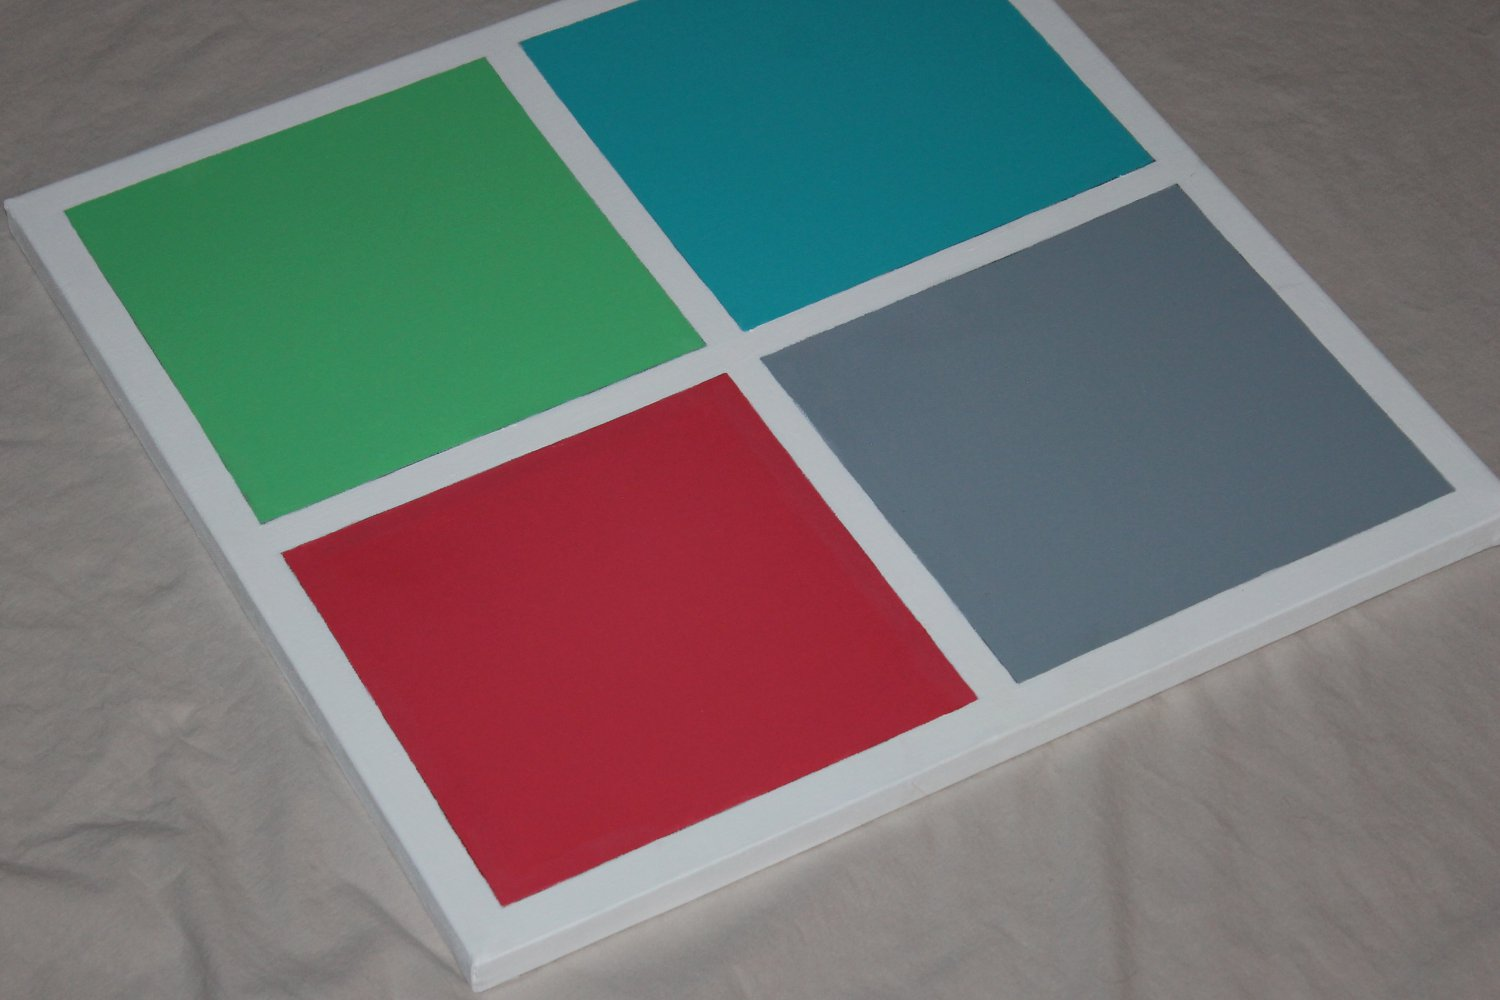 New minimalist art teal blue red green home interior decor decorative squares art acrylic painting